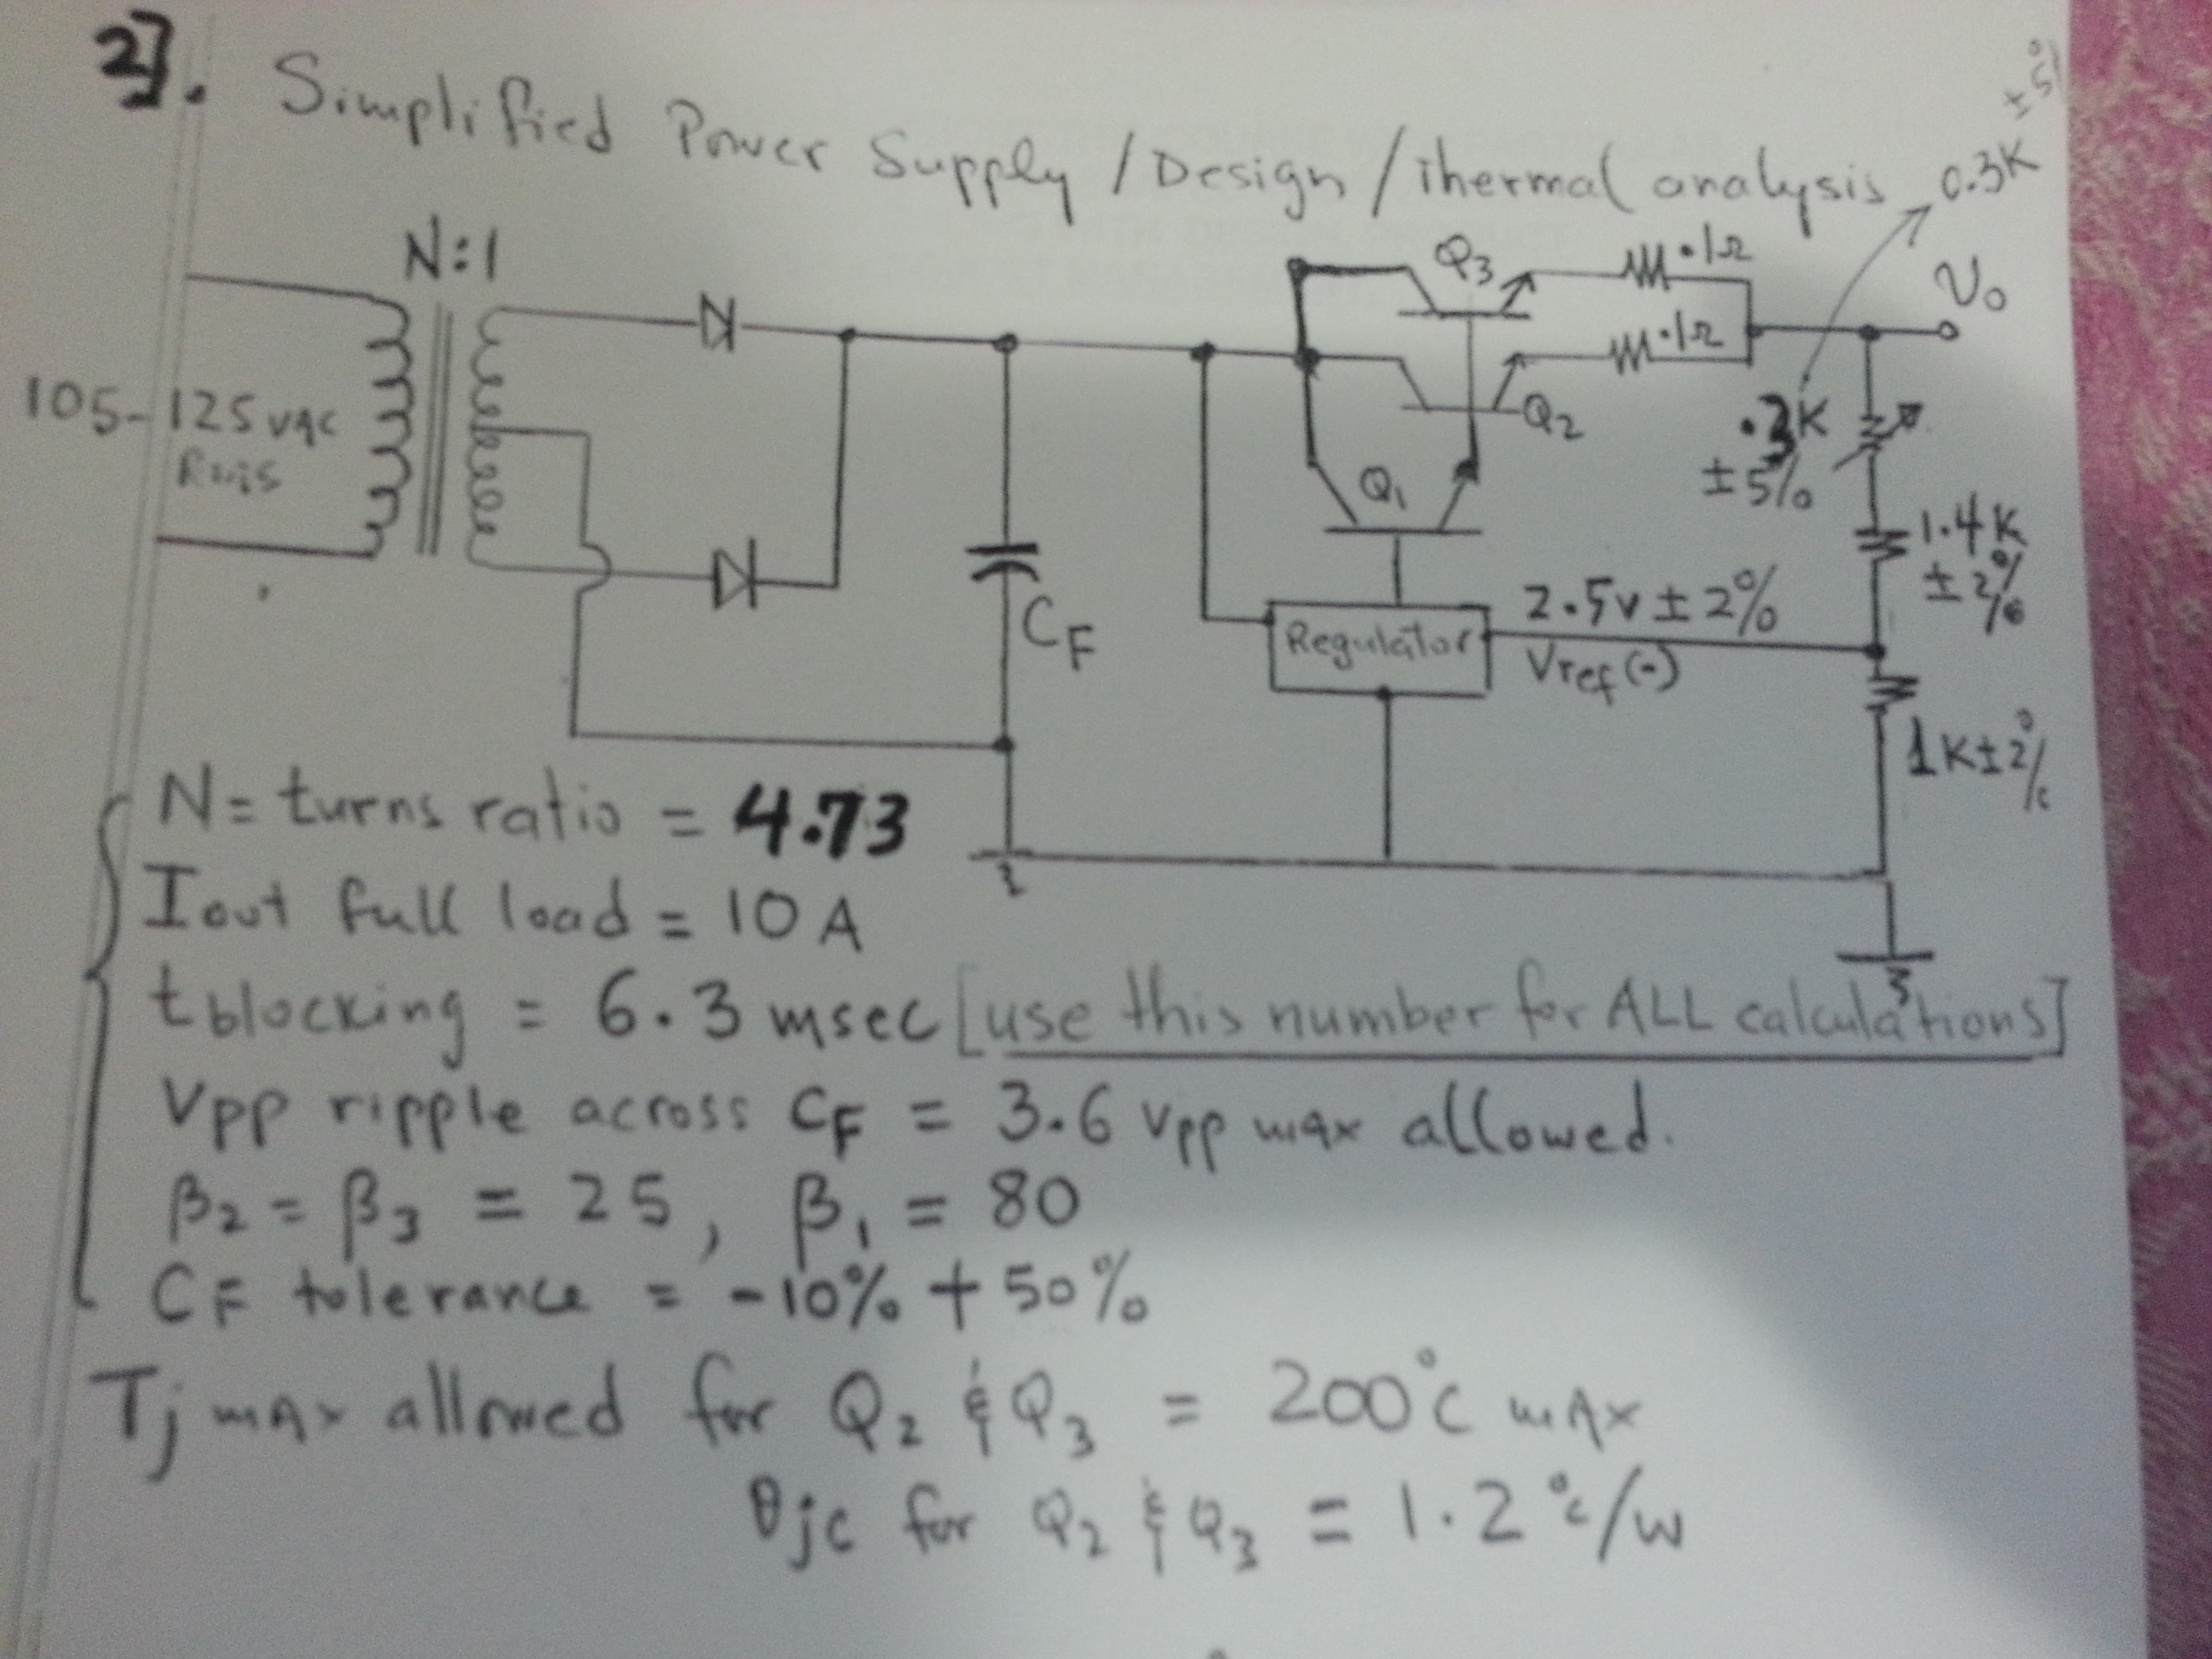 Simplified power supply/Design/Thermal analysis N